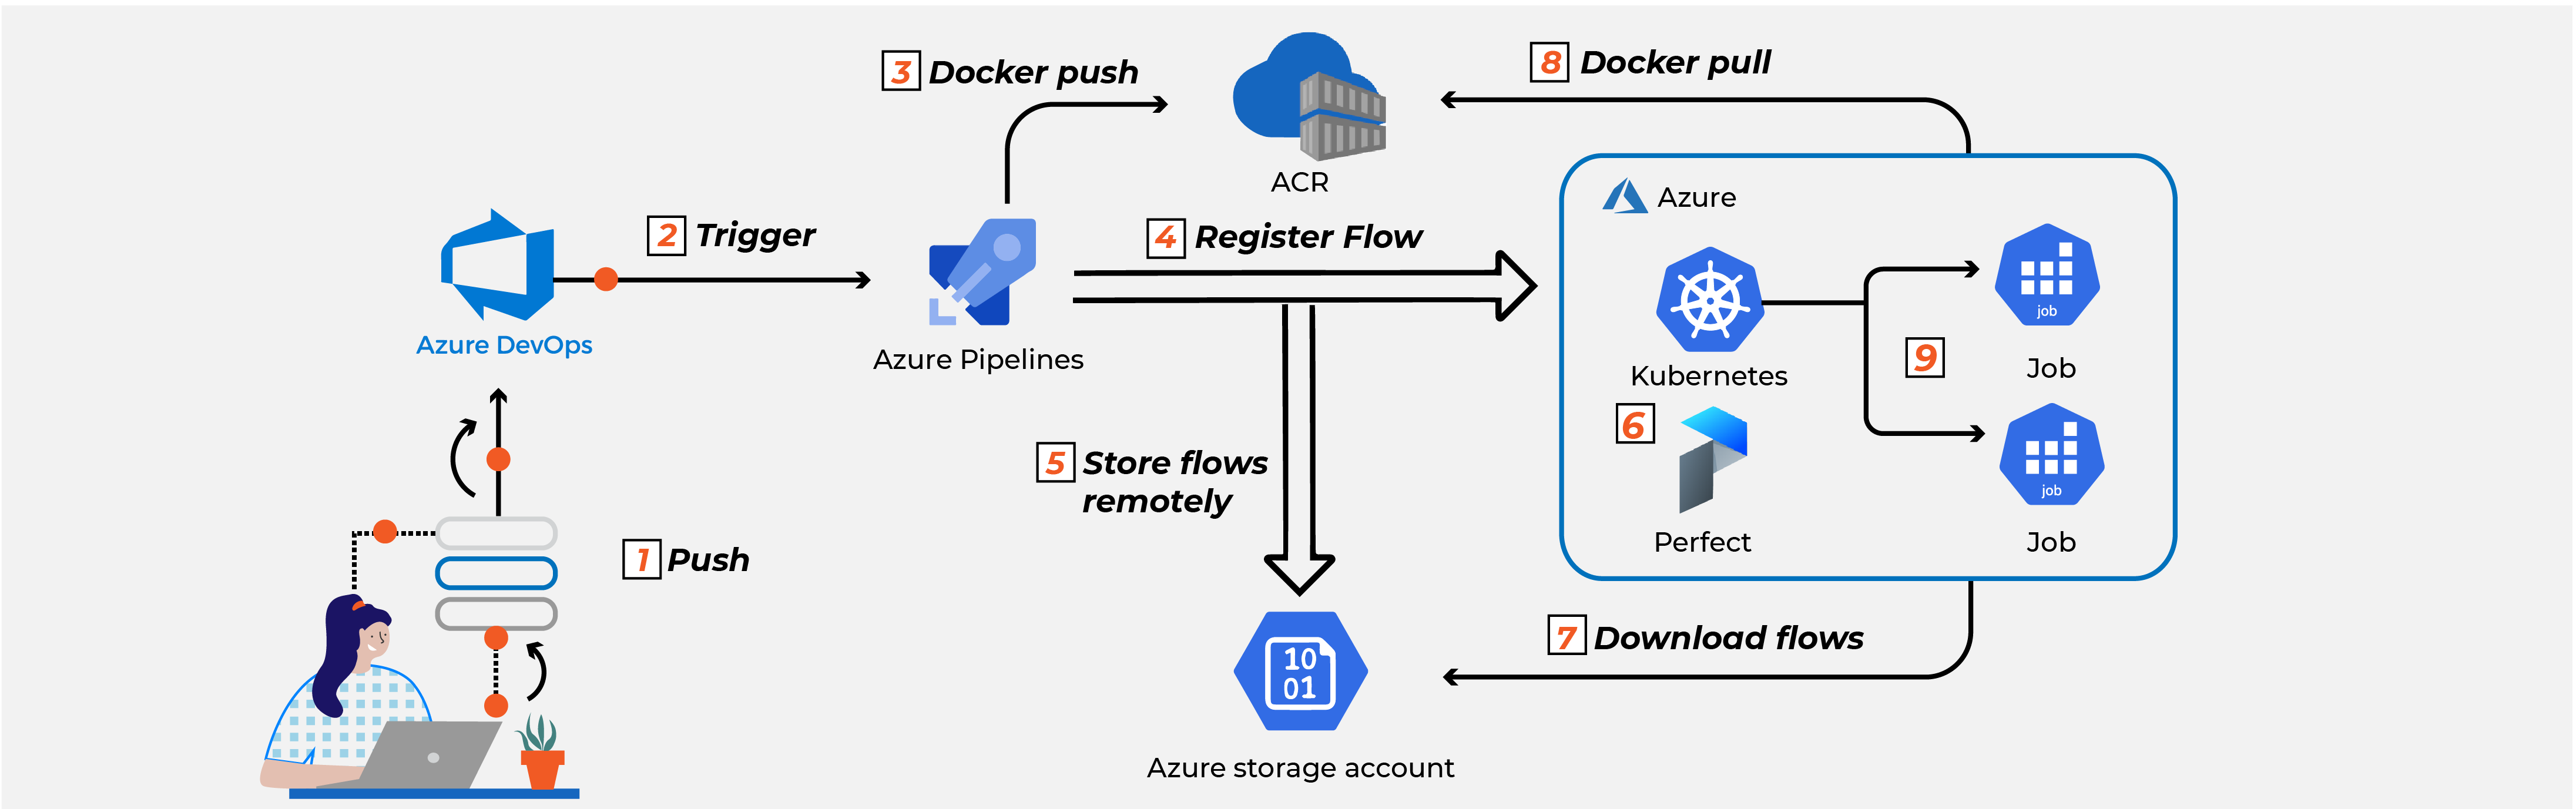 Workflow automation on Azure DevOps and AKS using Prefect